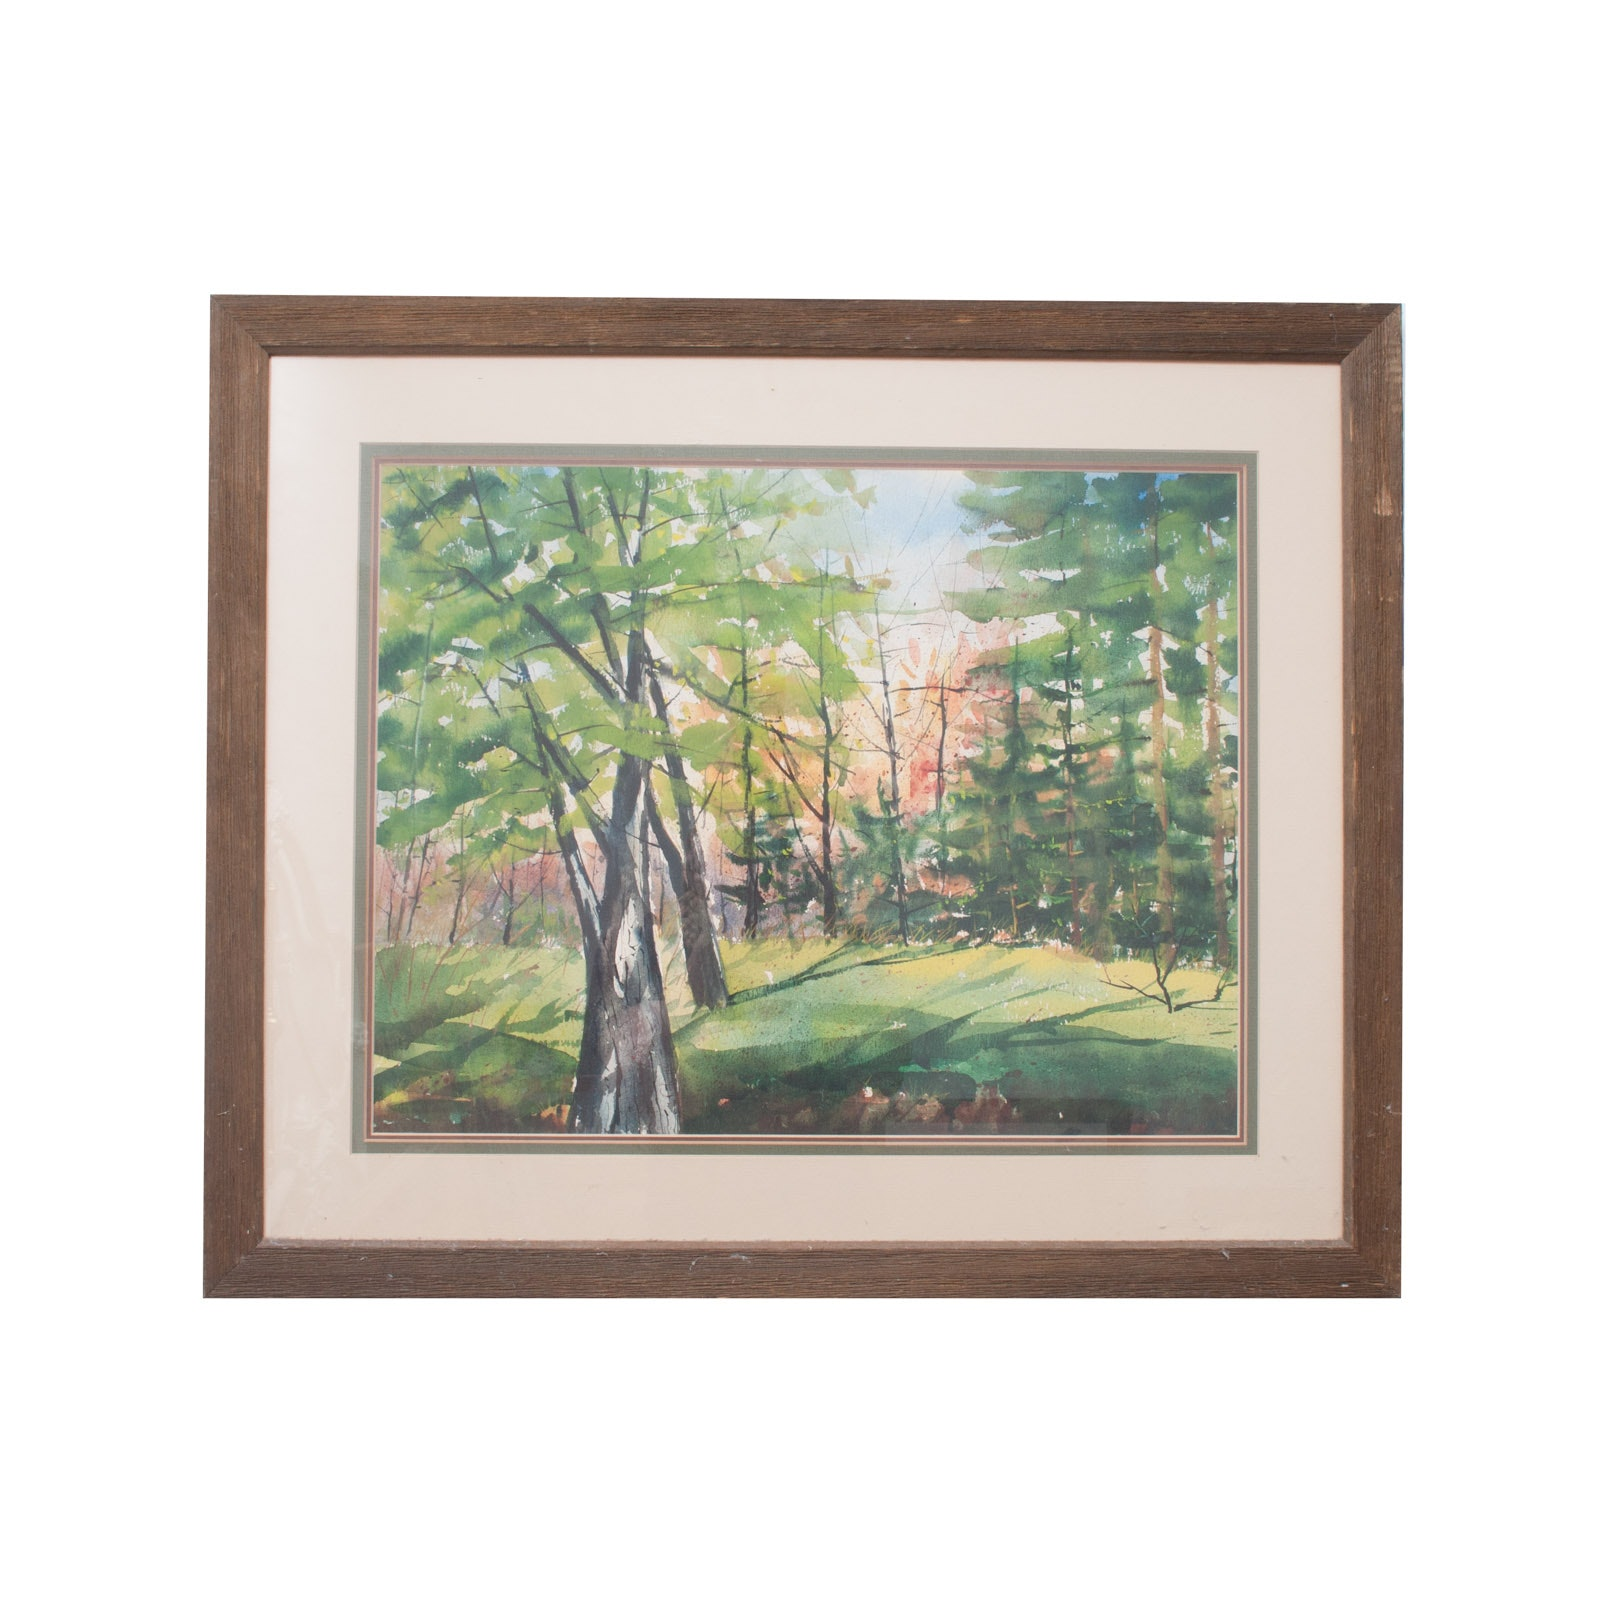 Original Watercolor on Paper of Forested Landscape